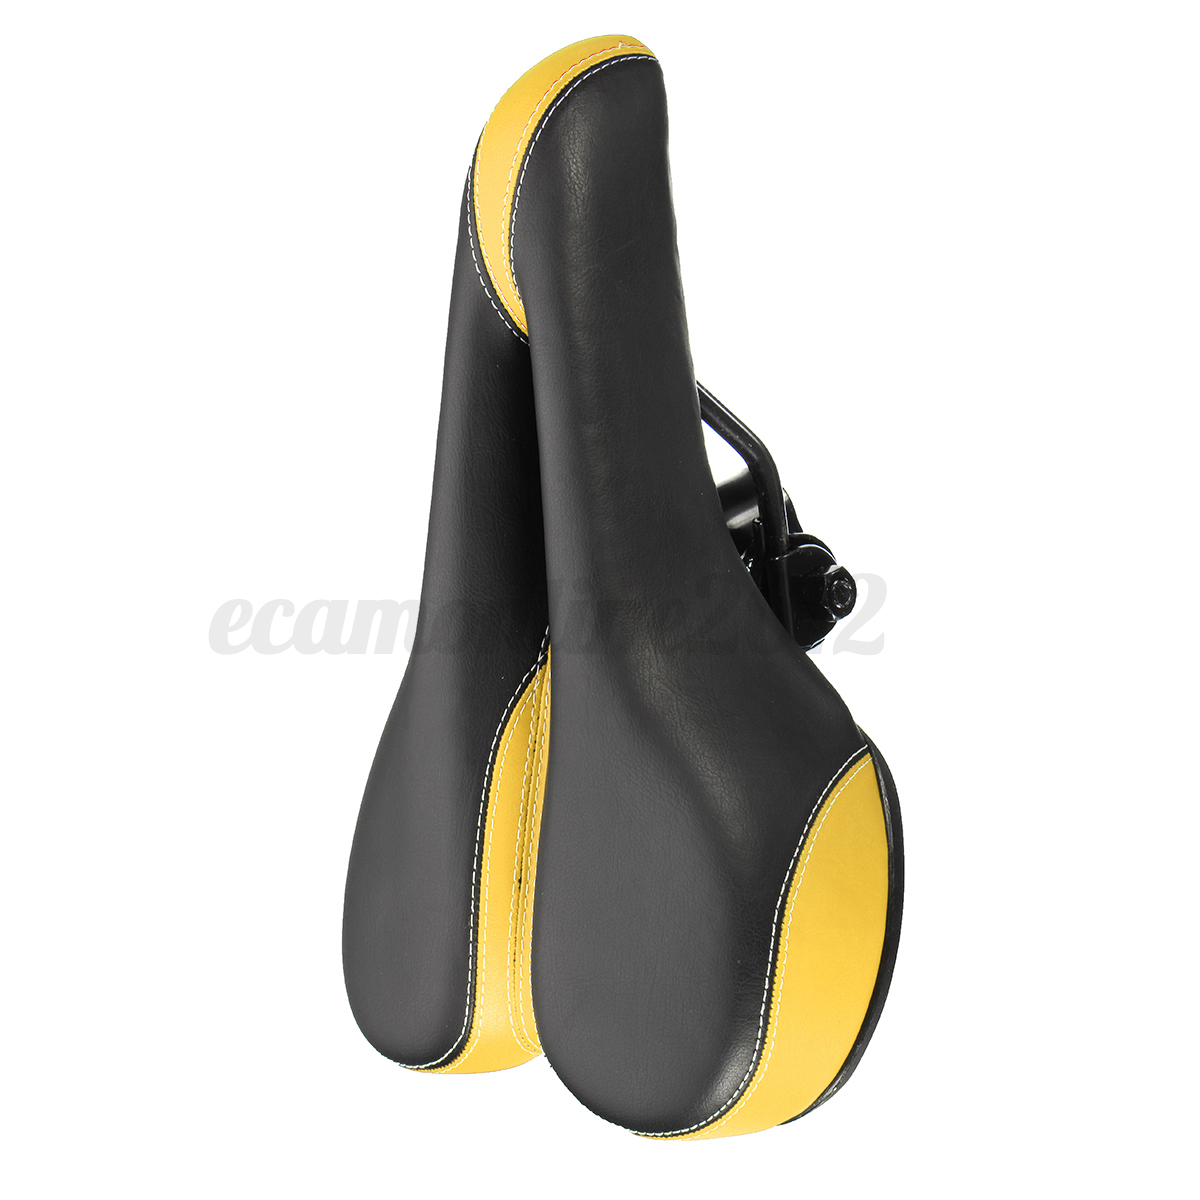 Mountain-Bike-Road-Bicycle-Racing-Hollow-Seat-Saddle-Cycling-Leather-Cushion-B